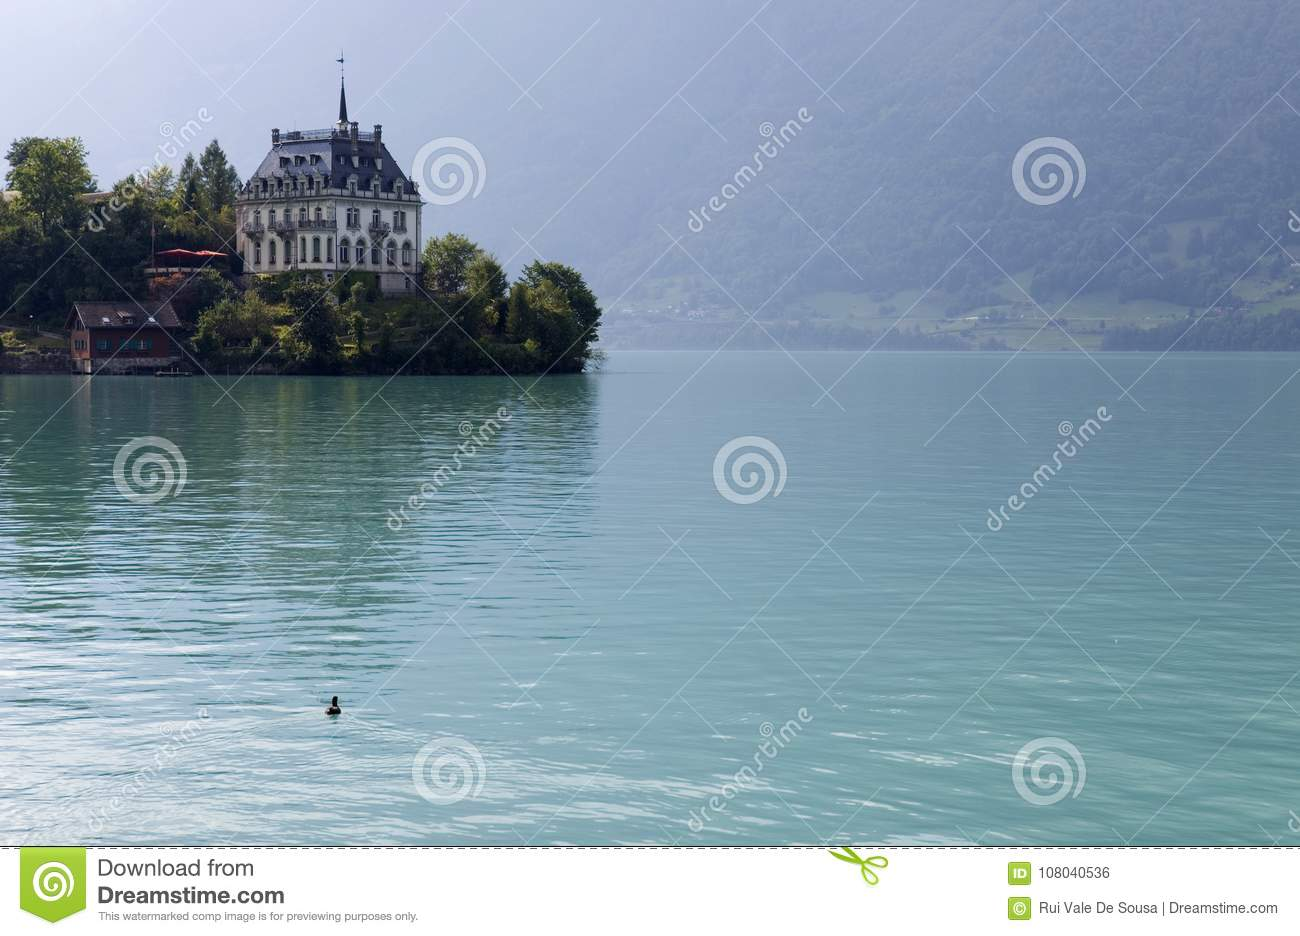 Iseltwald stock photo  Image of interlaken, lake, seeburg